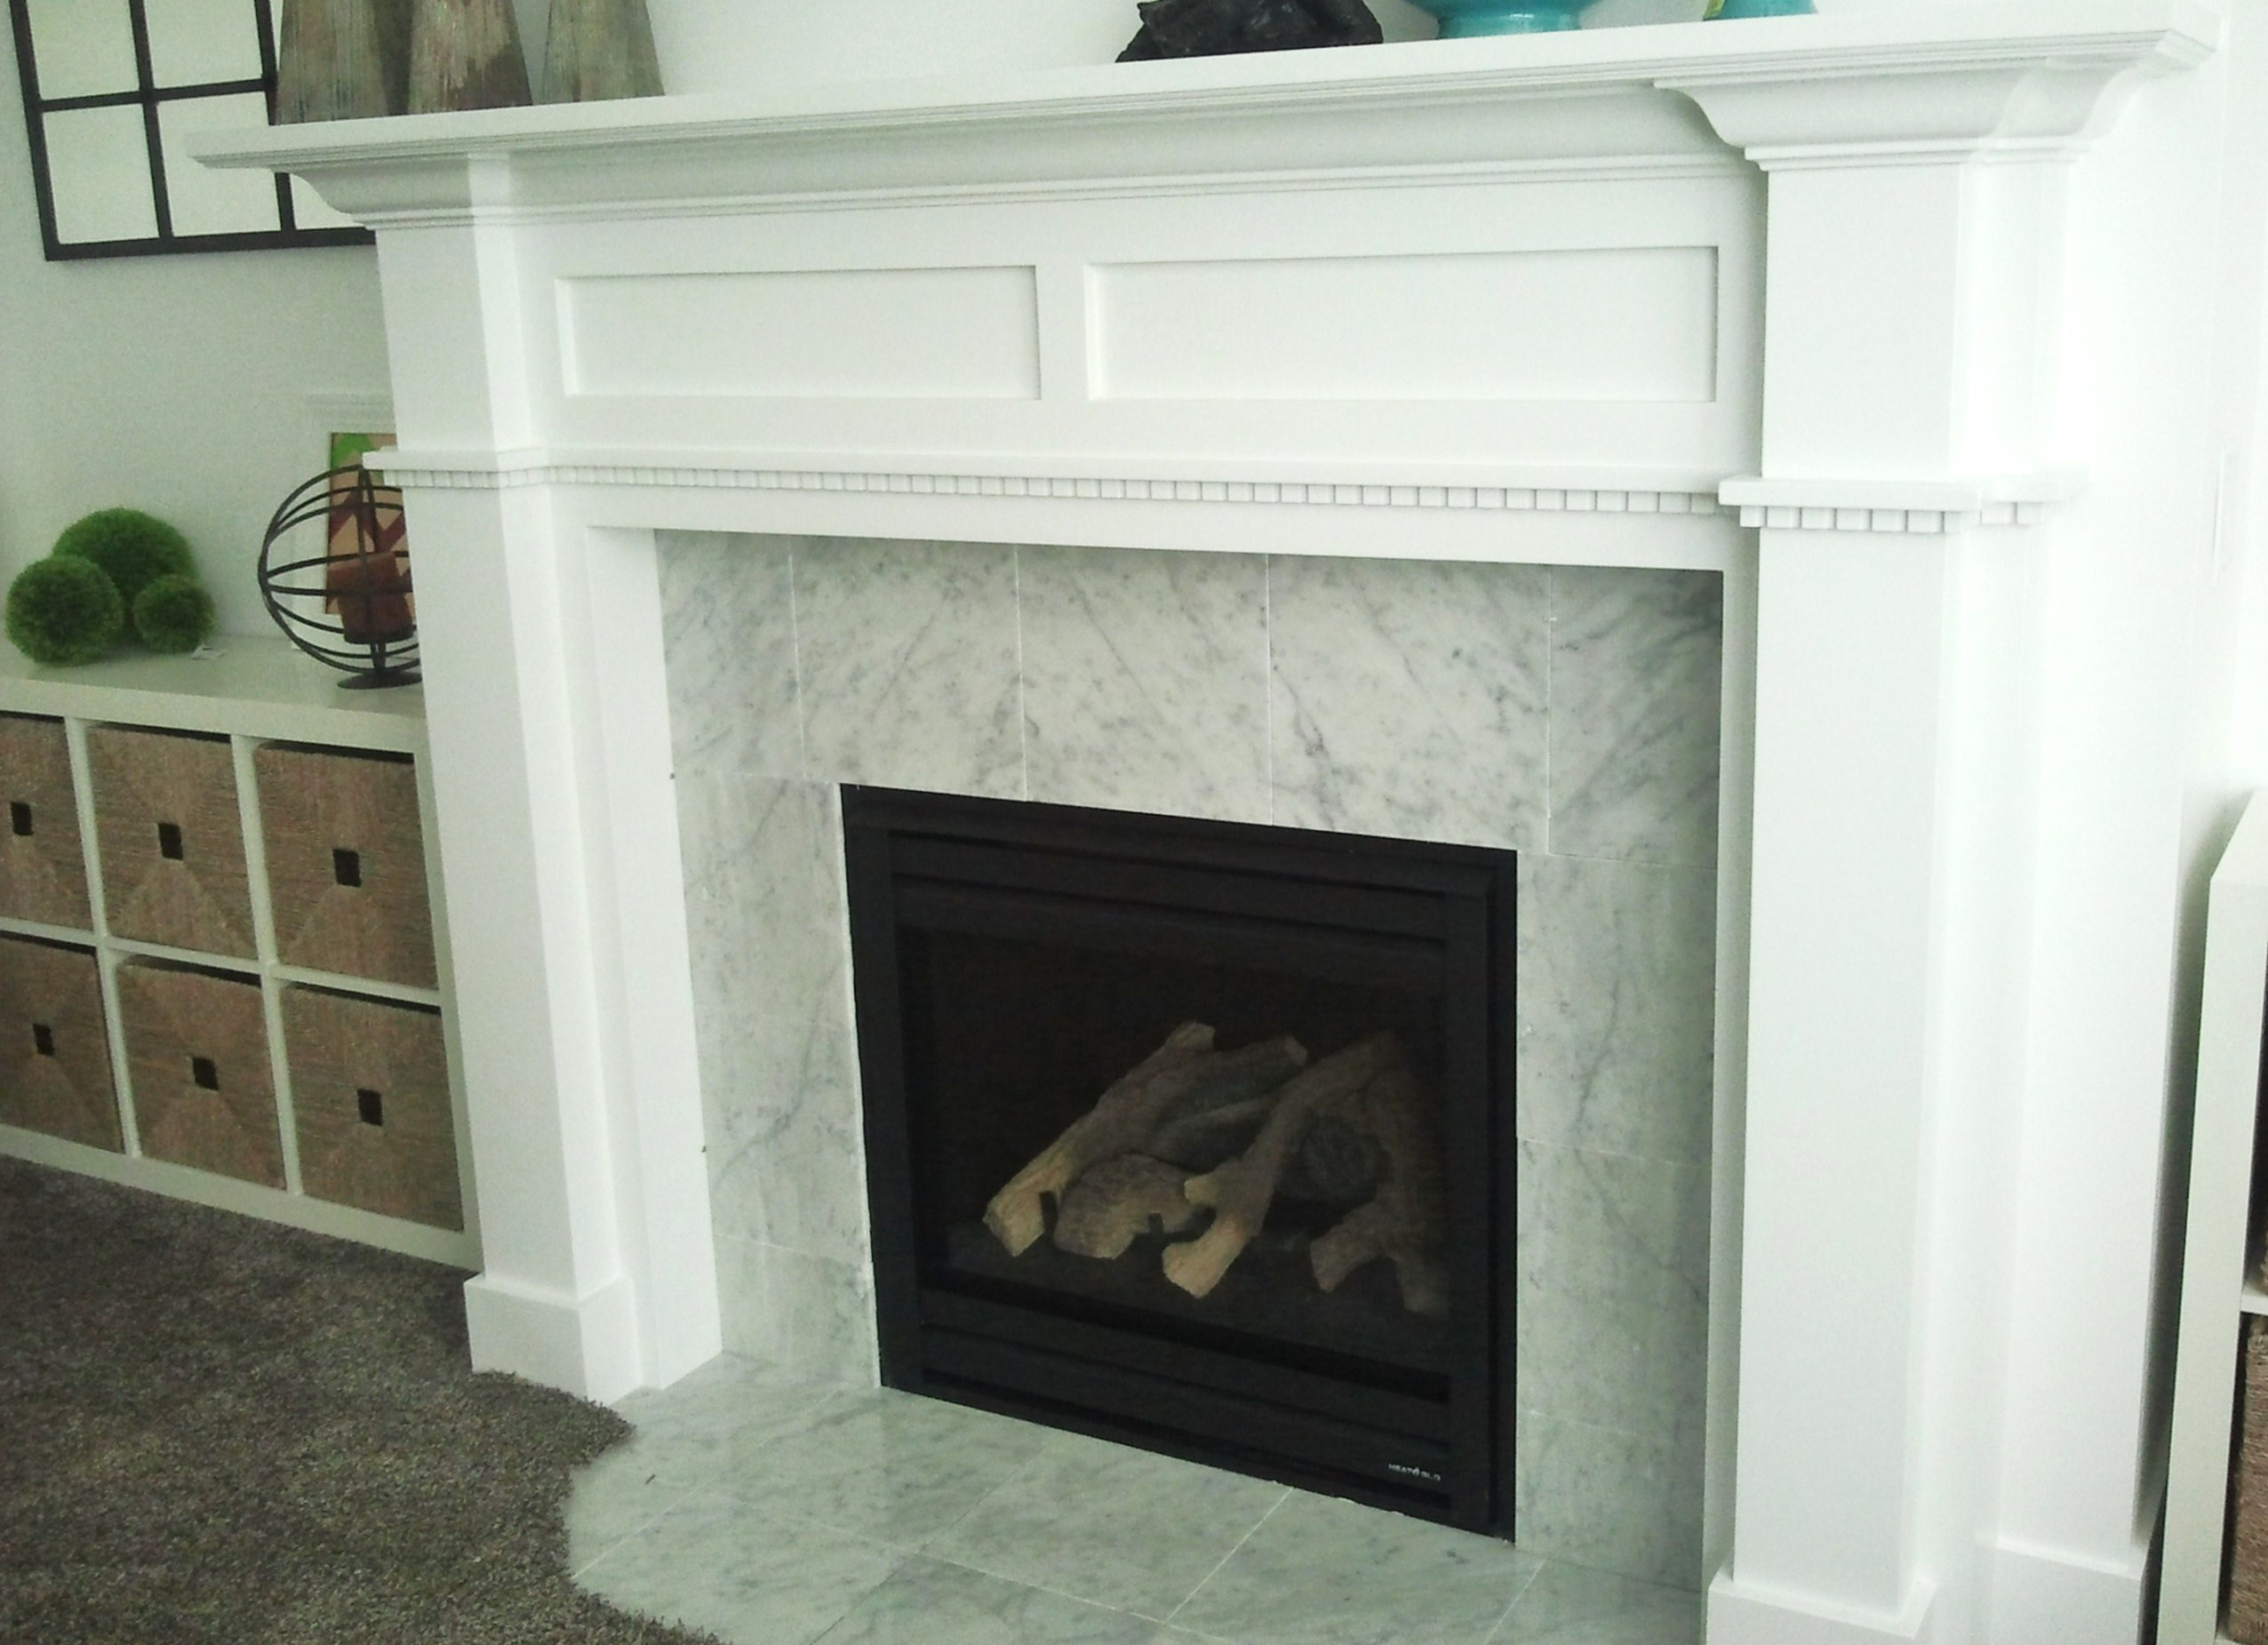 Best ideas about DIY Fireplace Mantel Surround Plans . Save or Pin DIY Fireplace Mantel And Surround Now.